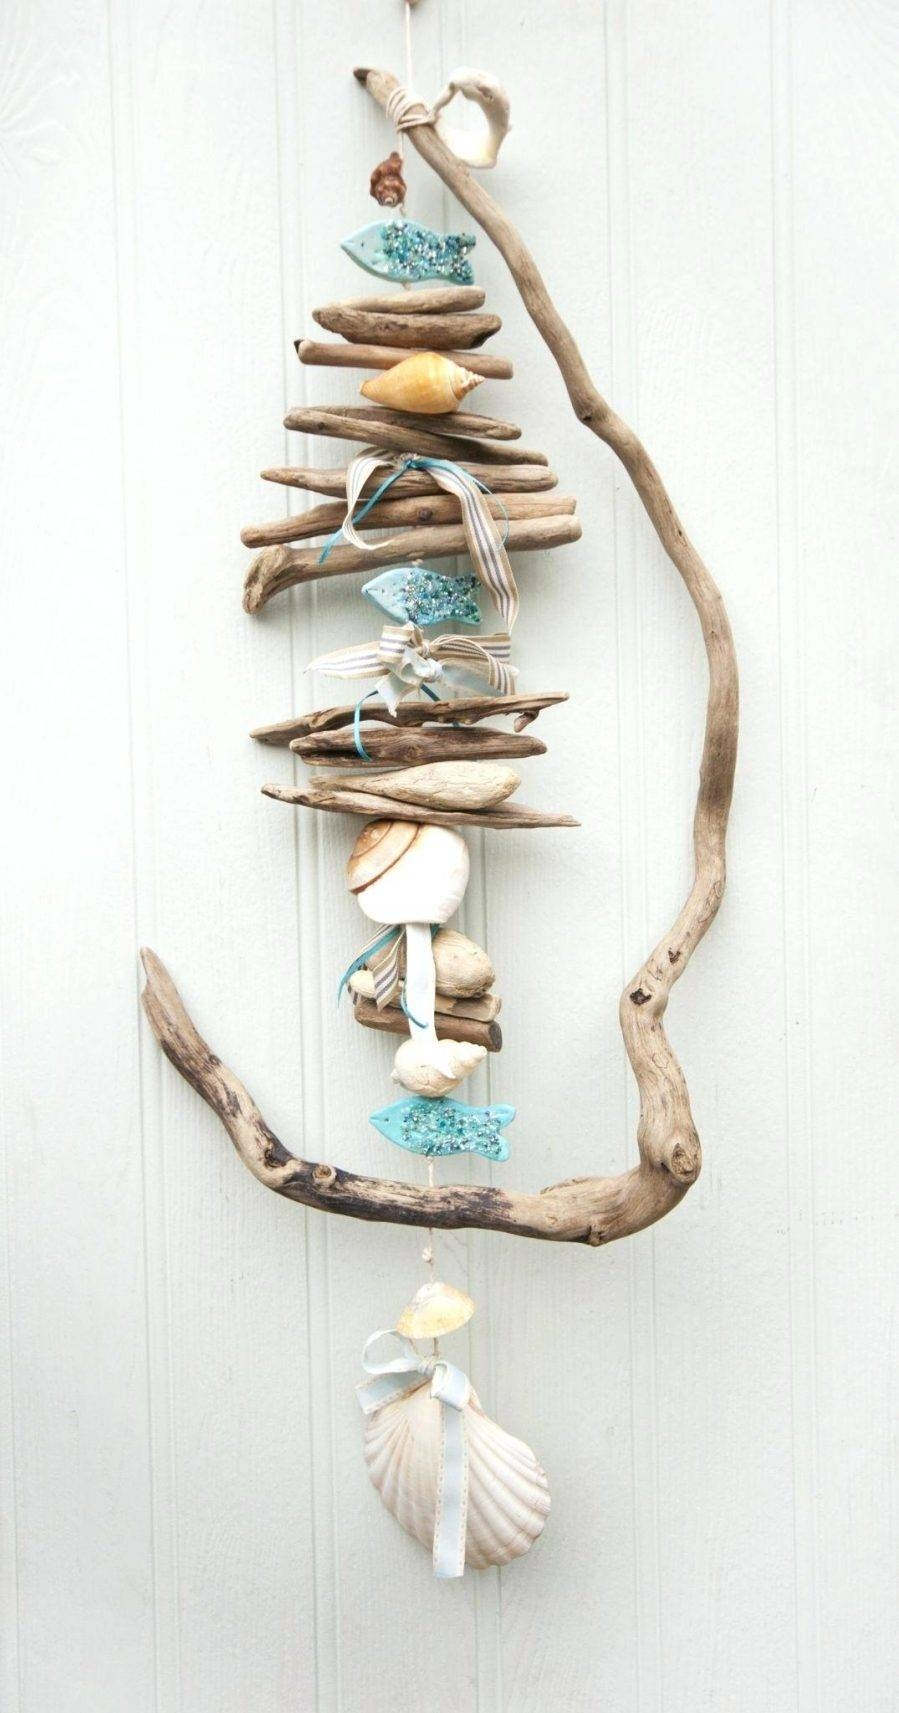 Articles With Driftwood Heart Wall Hanging Tag: Driftwood Wall Intended For Newest Large Driftwood Wall Art (View 6 of 30)